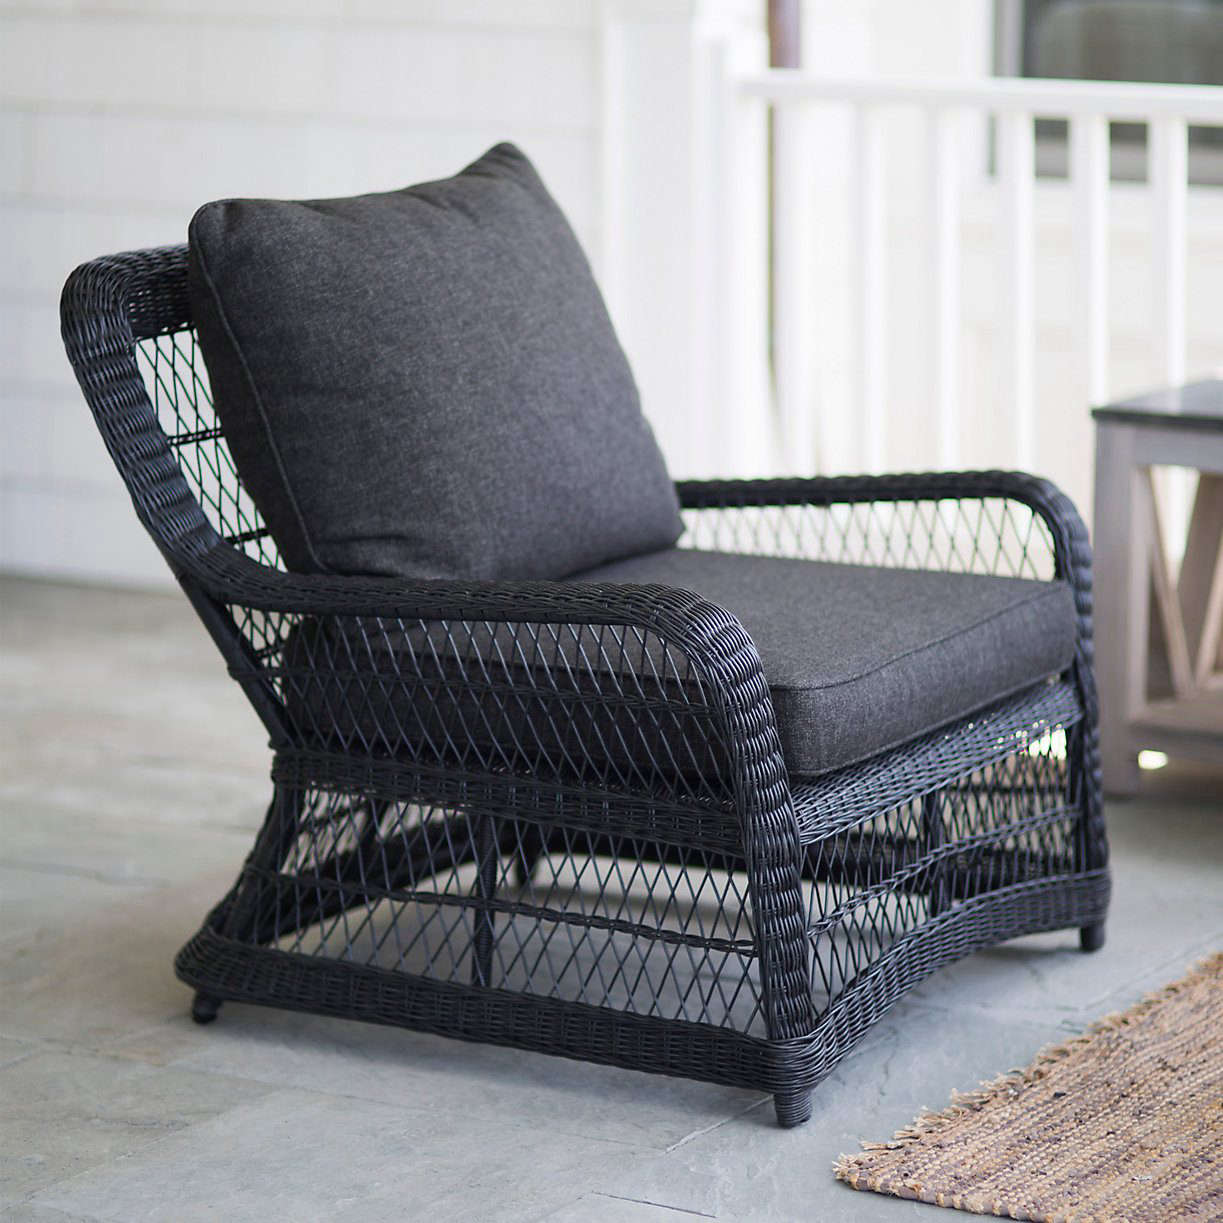 object of desire classic black wicker furniture gardenista